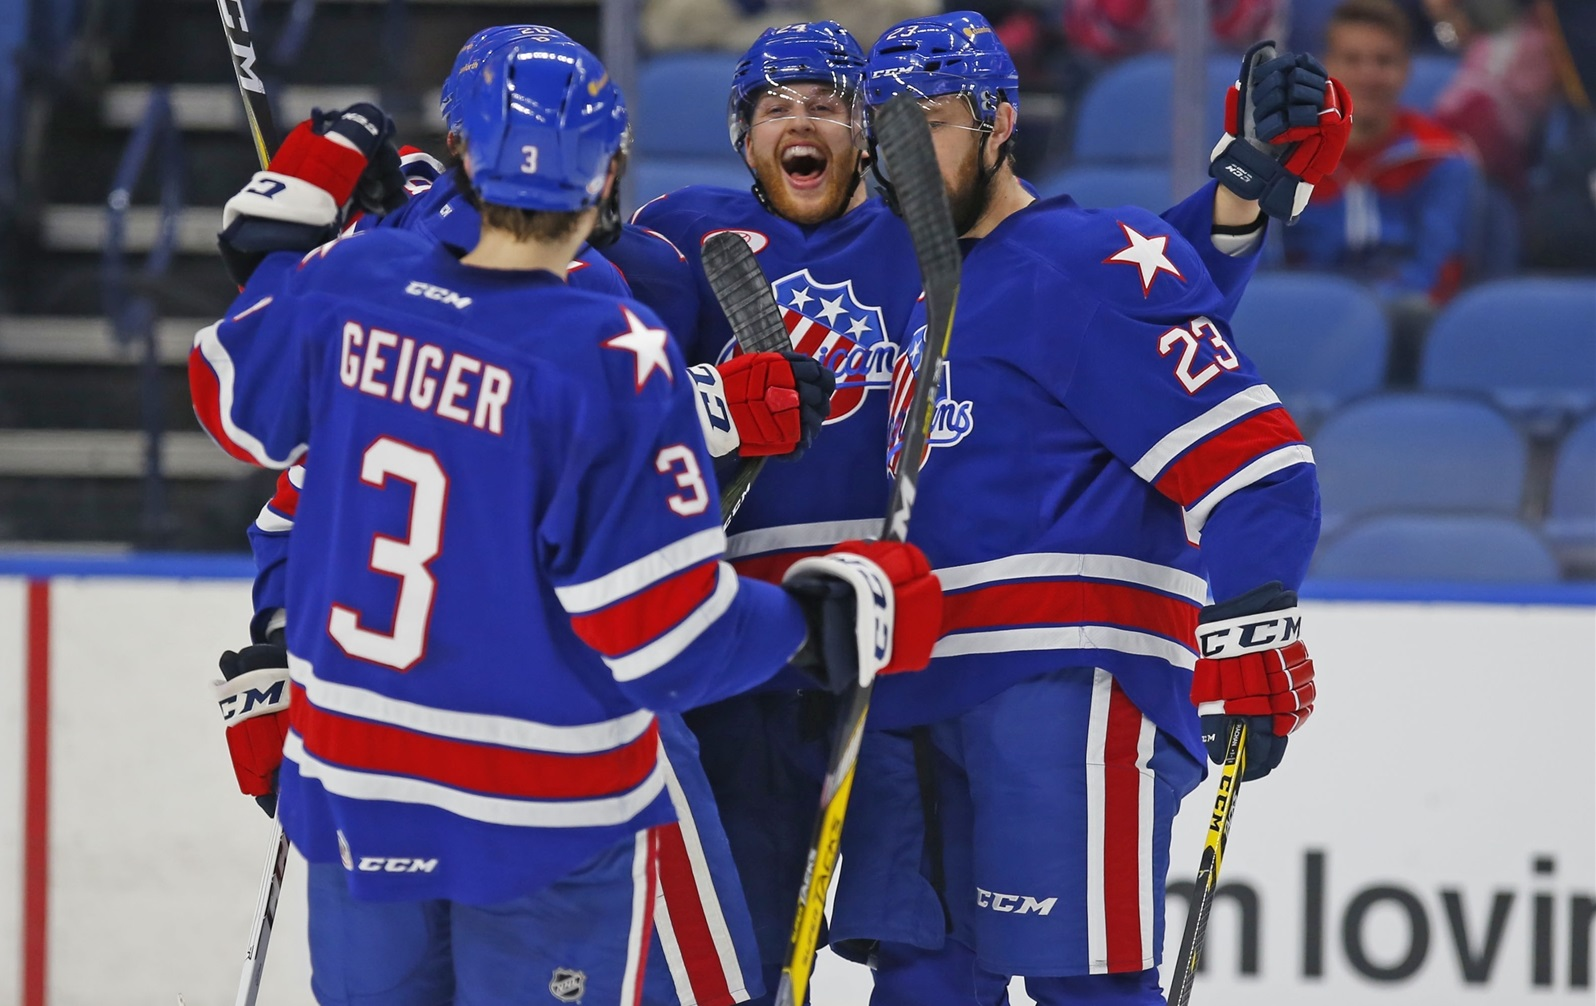 Hudson Fasching, middle, is among the young players ready to make a mark with the Rochester Americans. (Harry Scull Jr./Buffalo News)